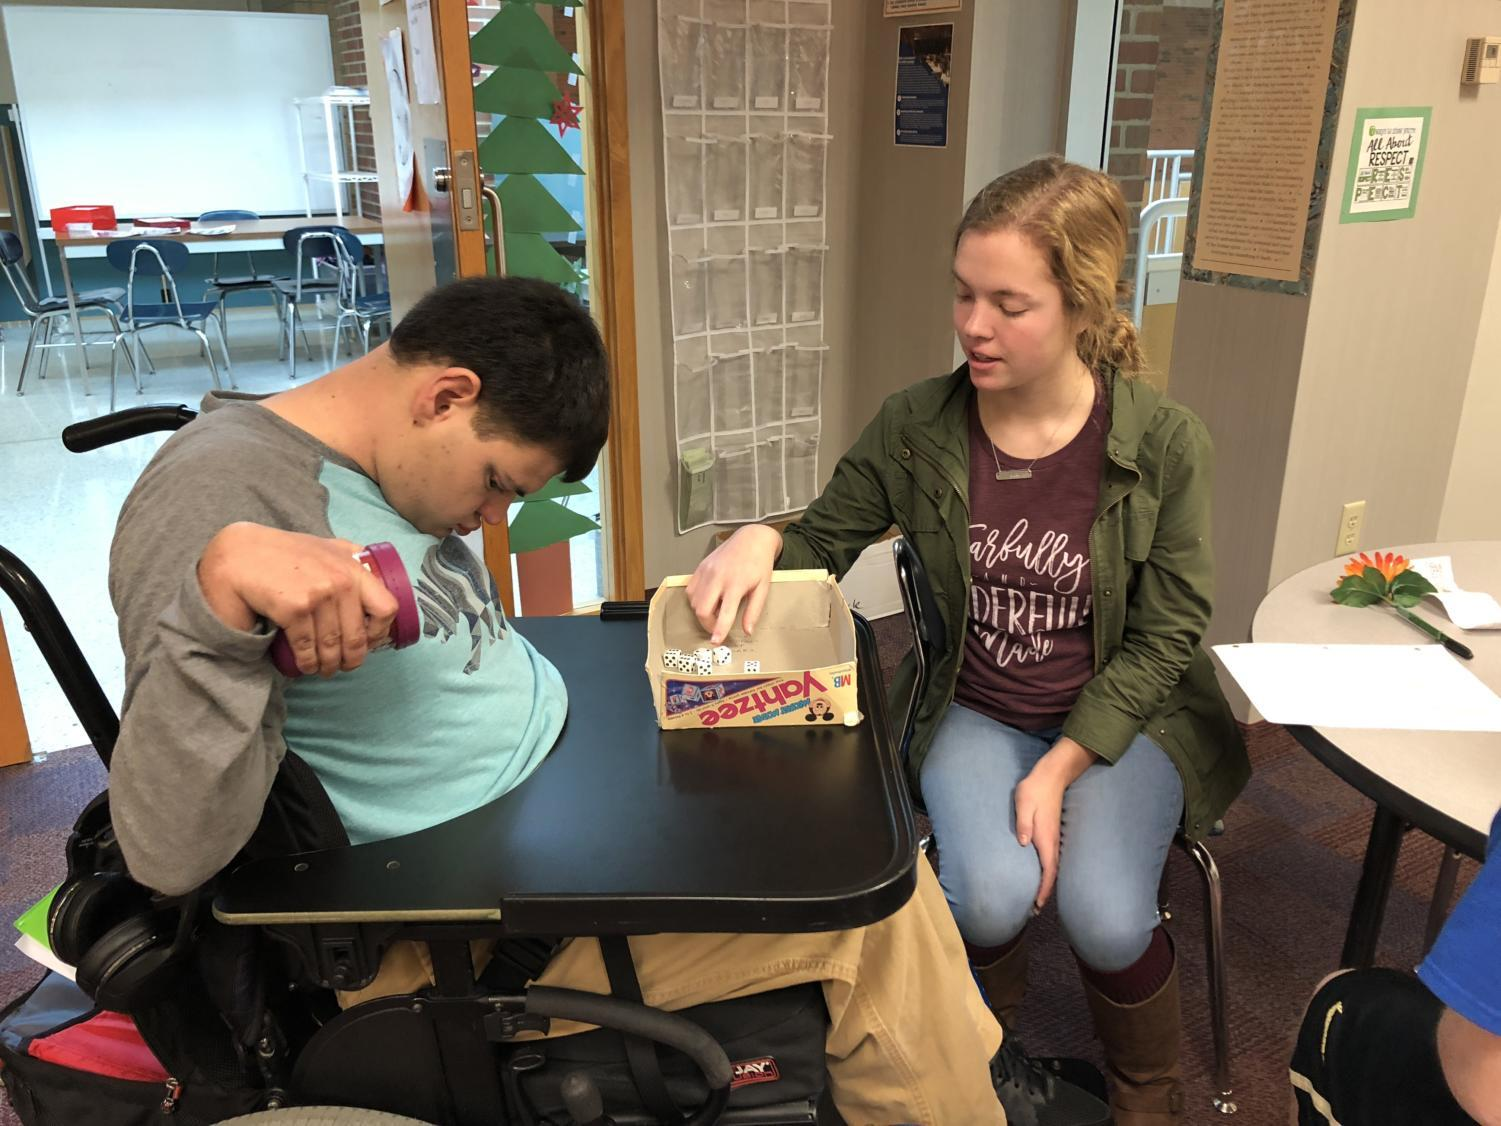 Best Buddies president Anne Schuh plays Yahtzee with a student with special needs. Anne spends her SRTs in D206, where she can spend time with peers with disabilities and aid Best Buddies sponsor Dana Lawrence.